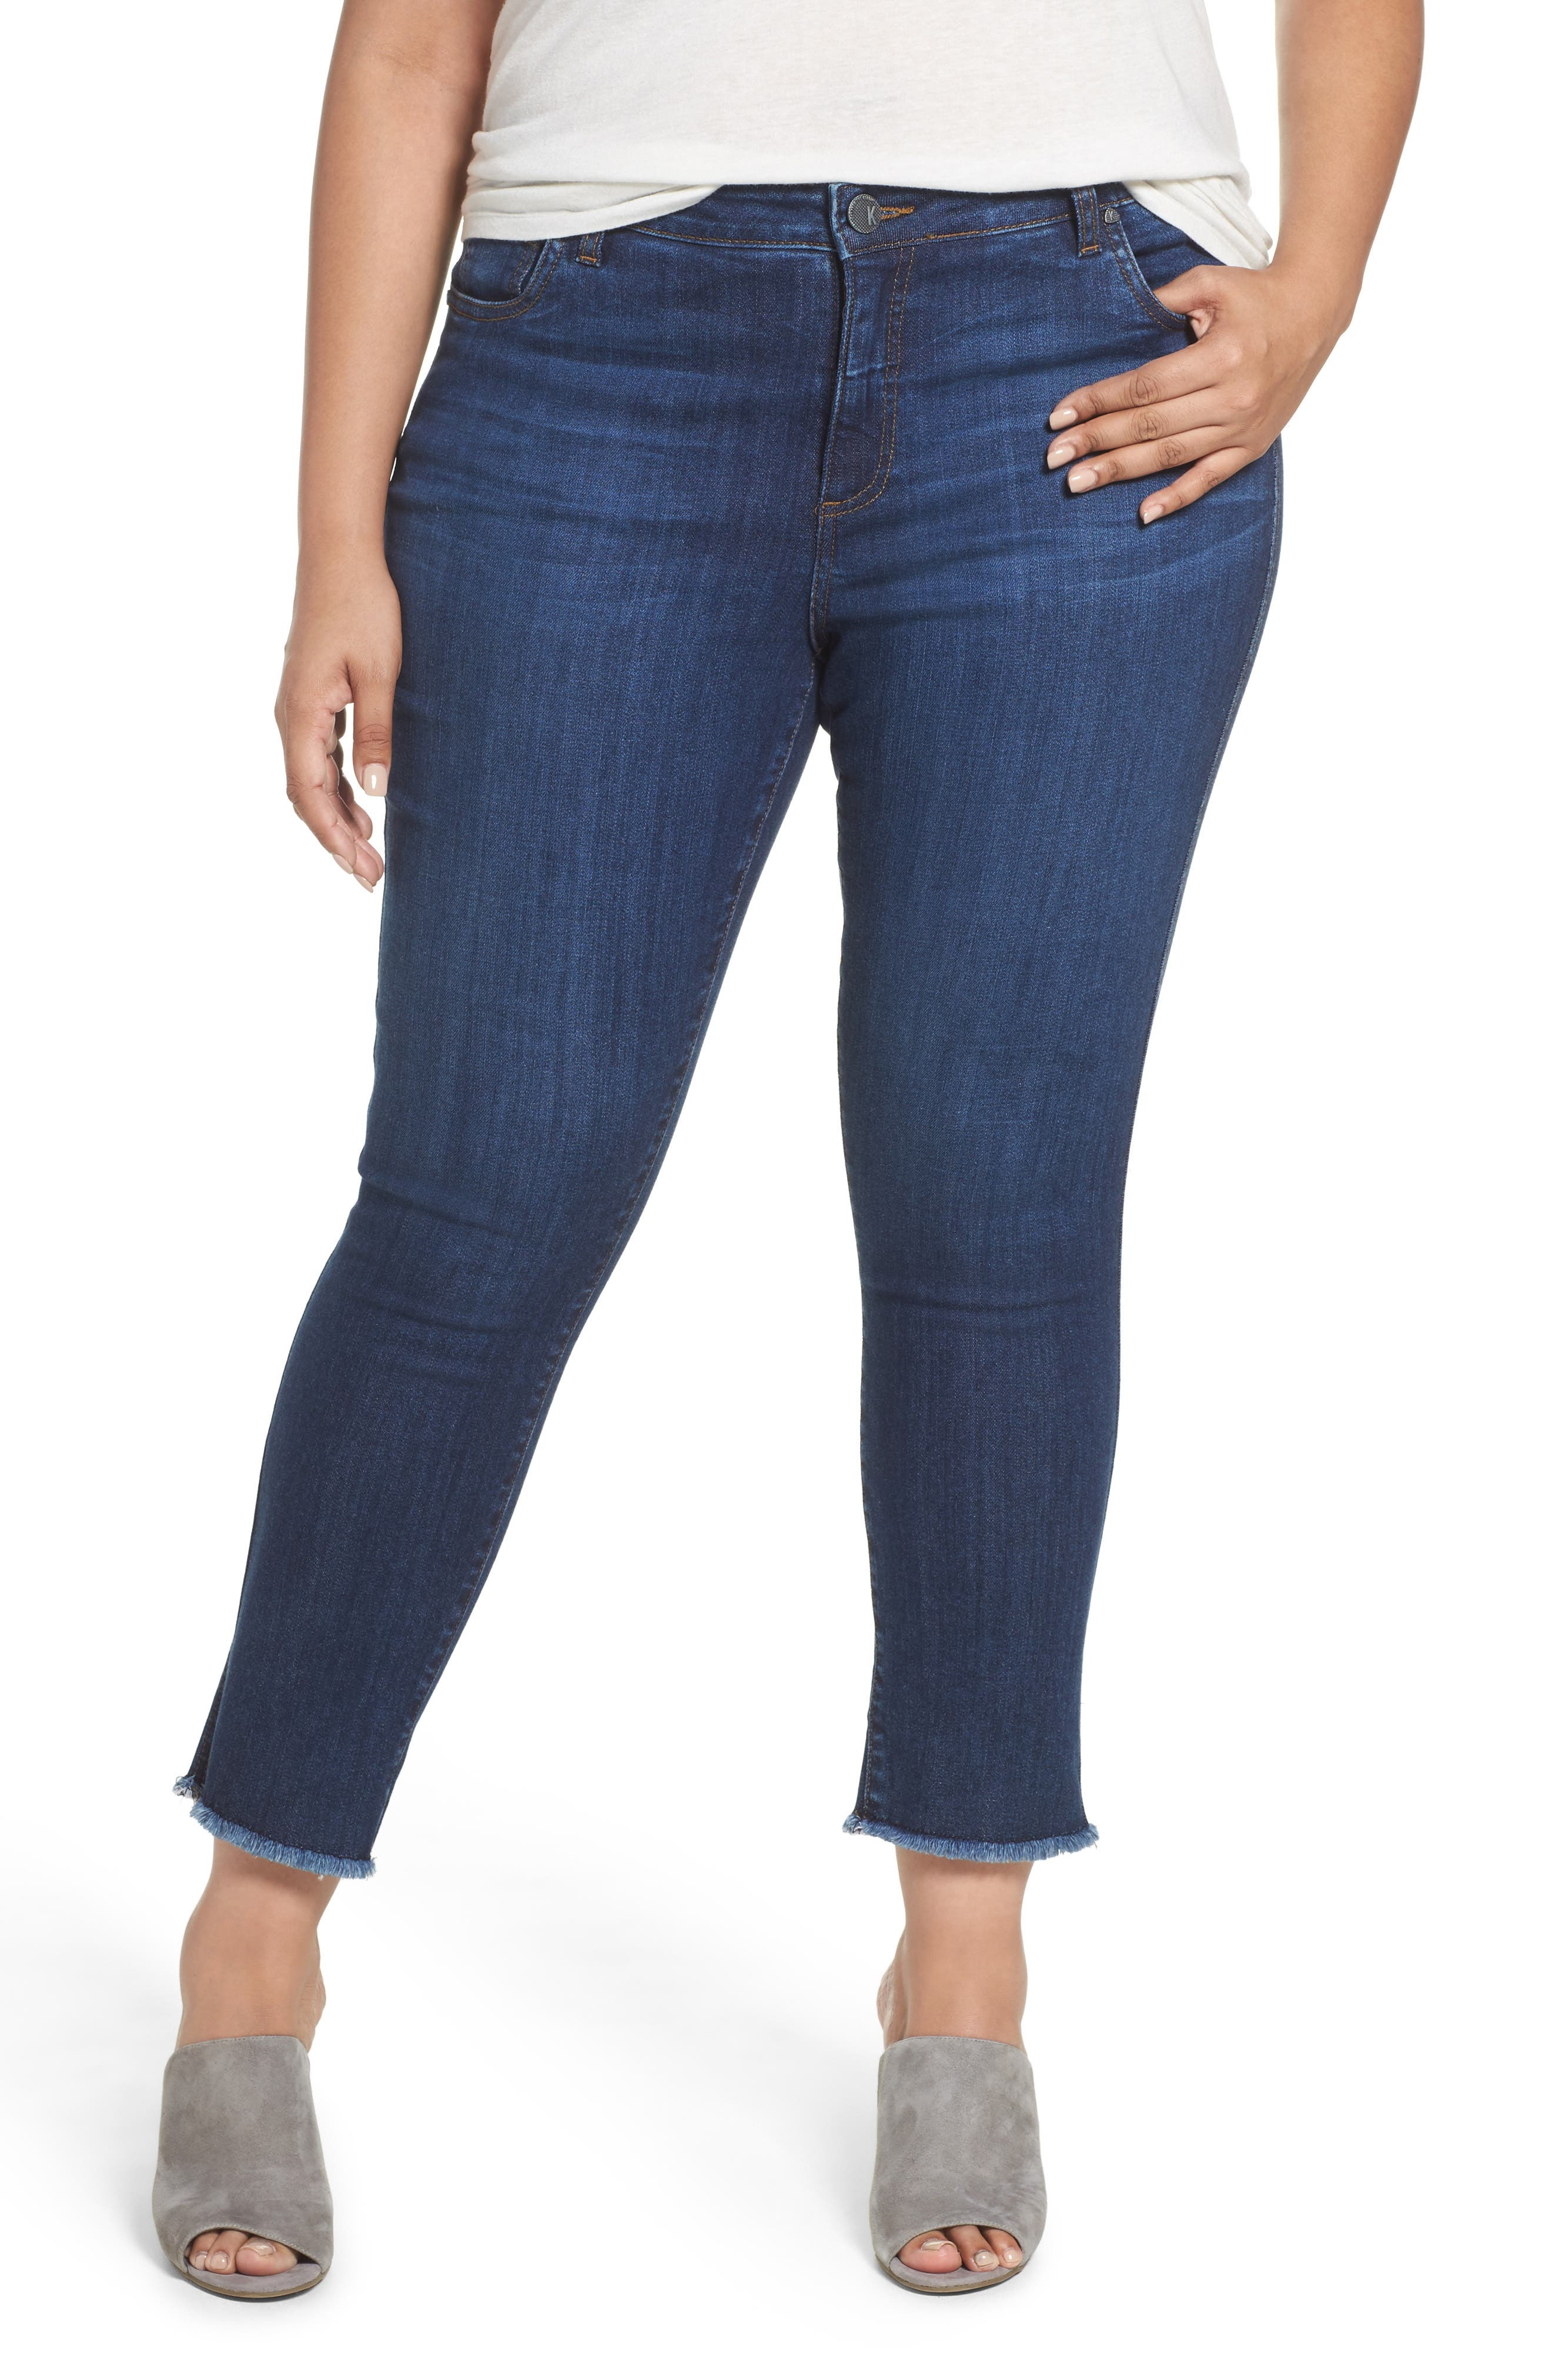 Main Image - KUT from the Kloth Reese Frayed Ankle Jeans (Upheld) (Plus Size)